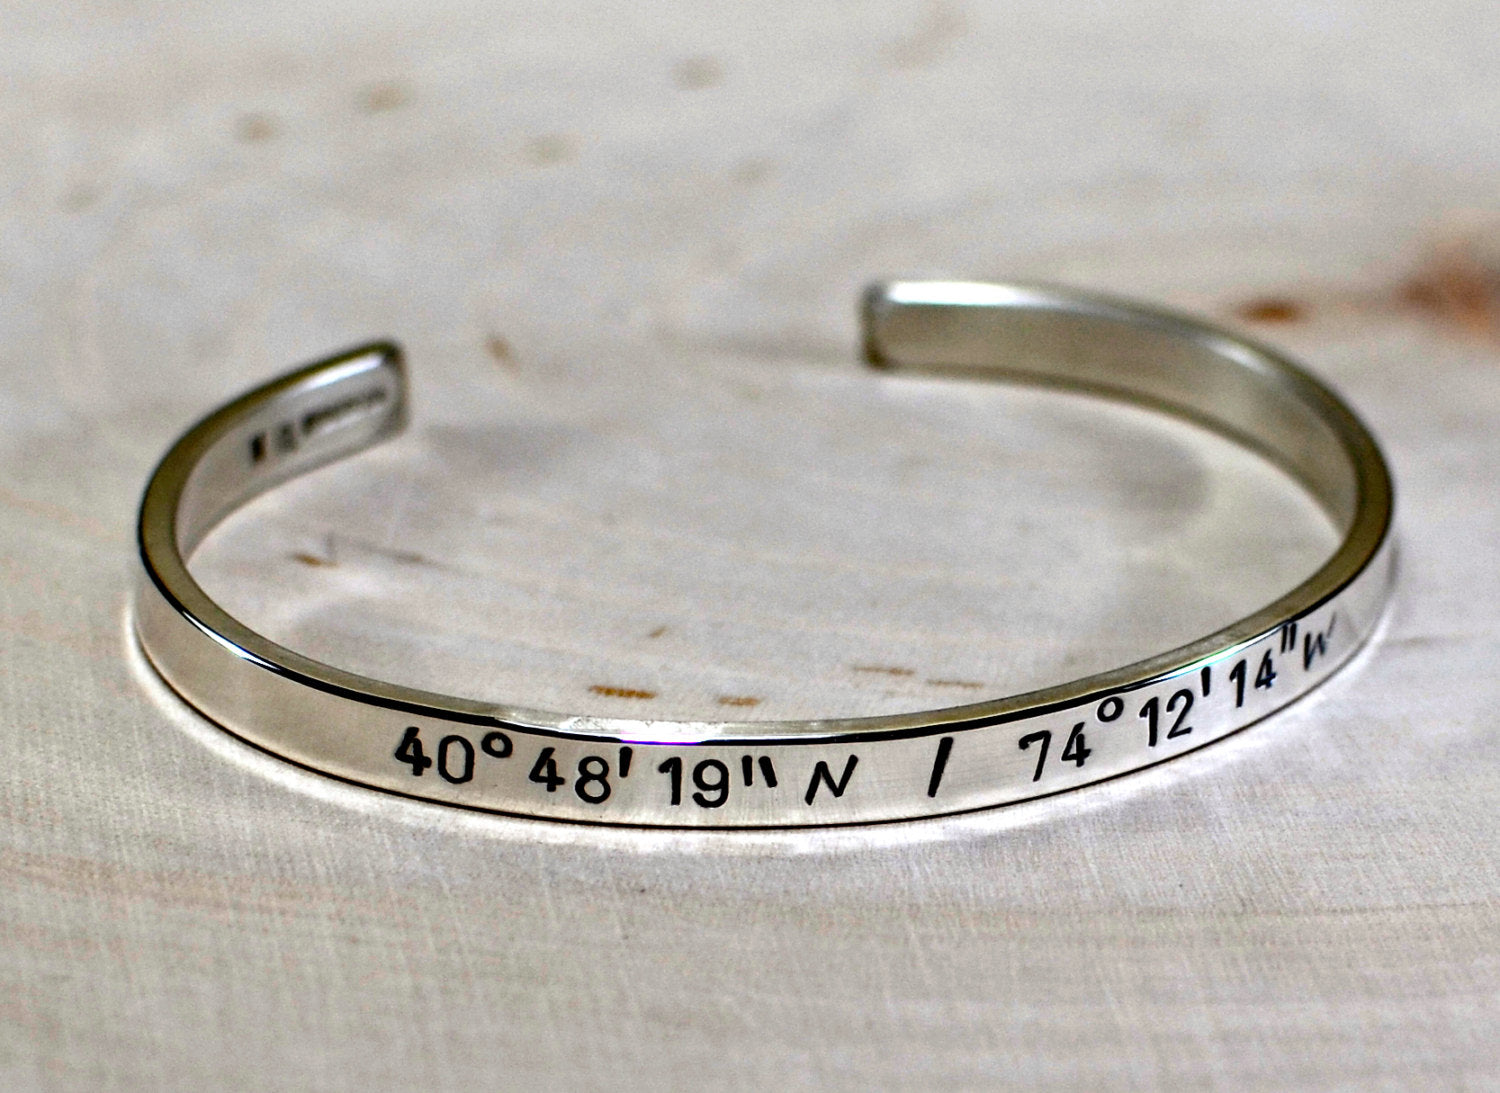 products il gold cuff for bracelet longitude fullxfull men him anniversary personalized mens coordinates latitude gps